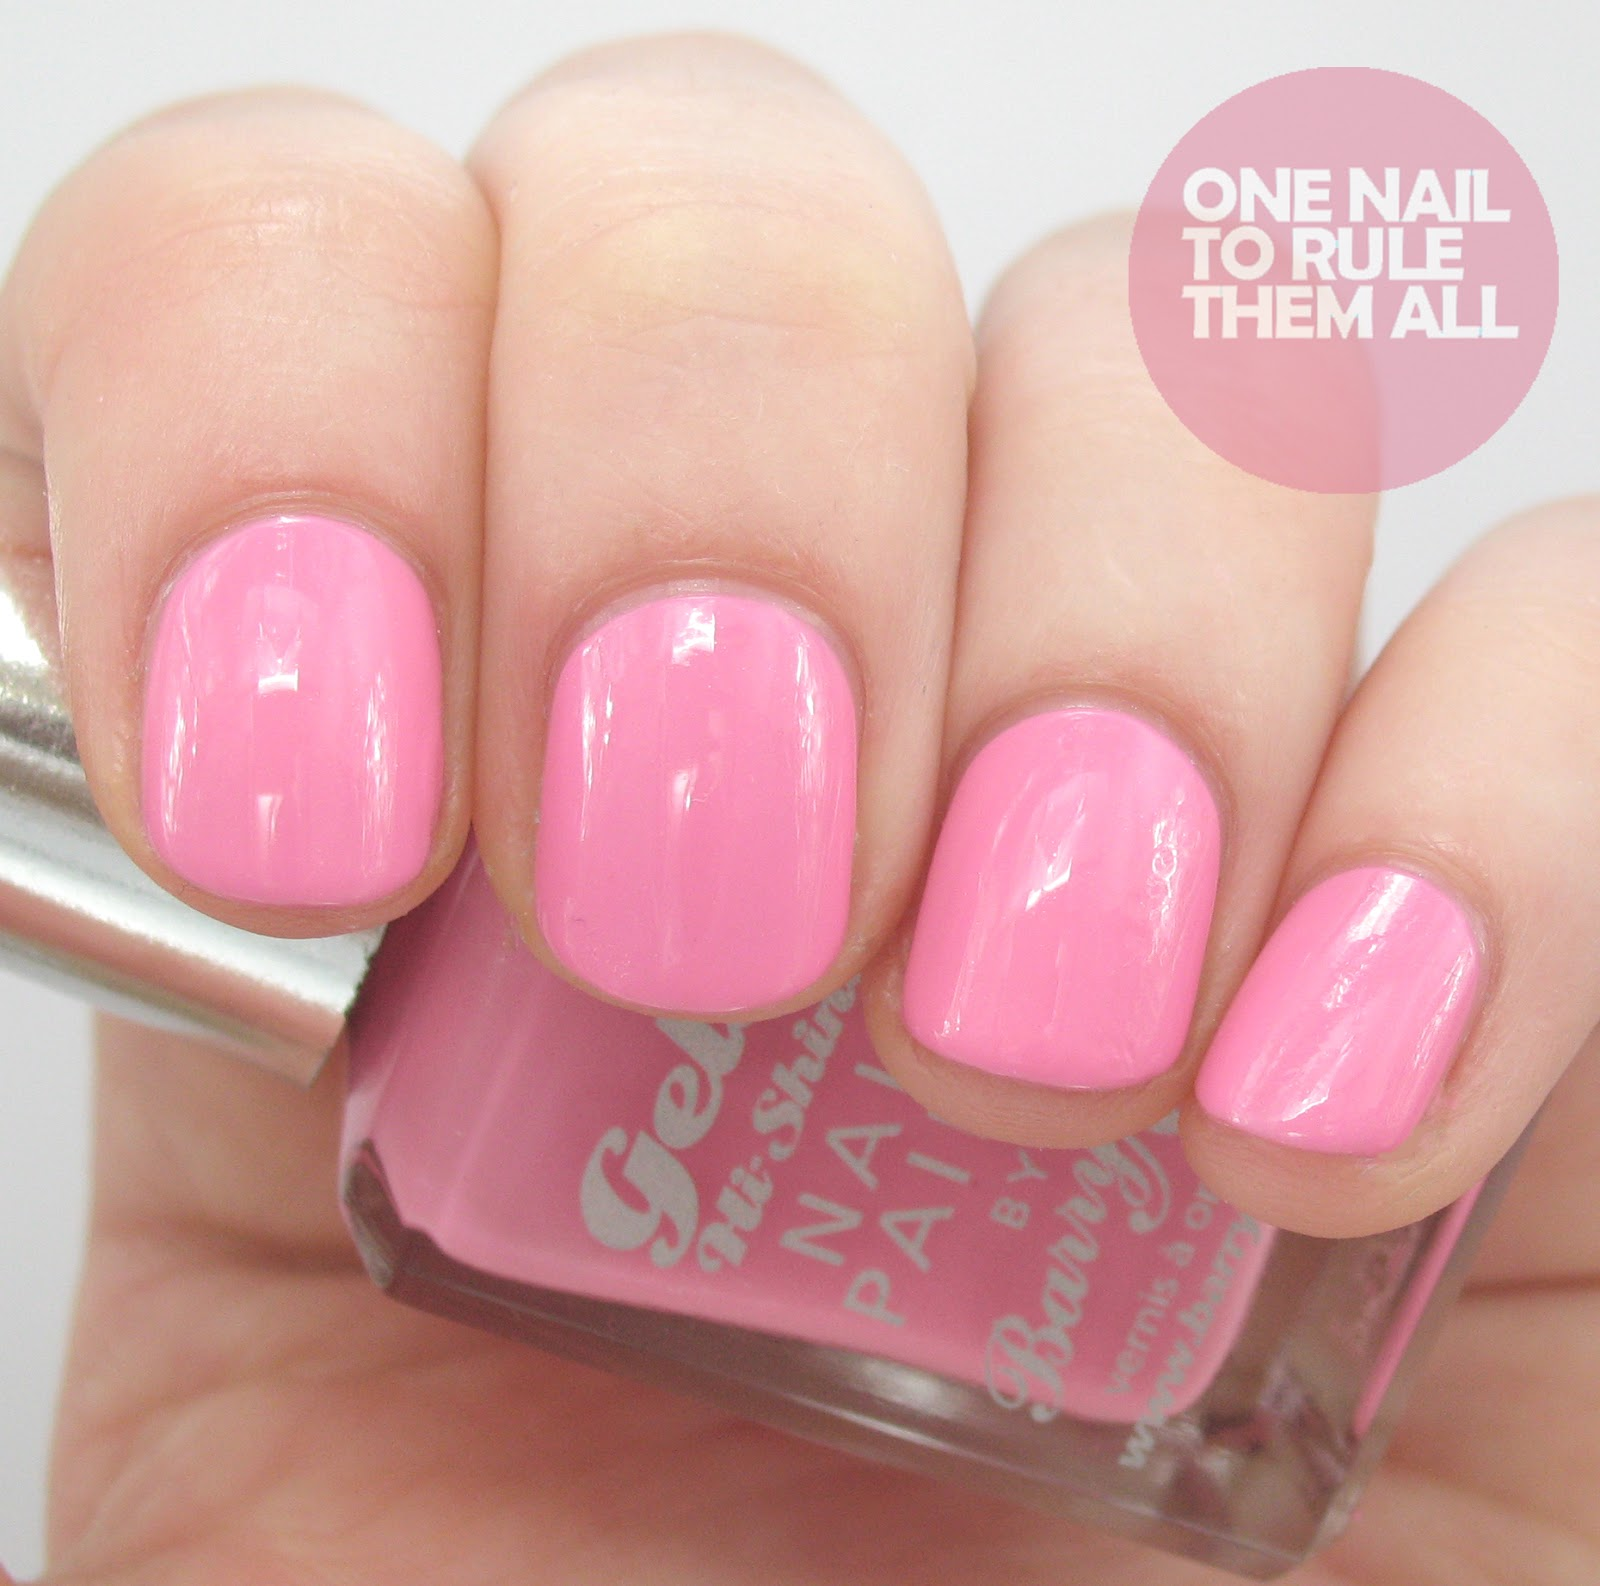 One Nail To Rule Them All Barry M Nail Art Pens Review: One Nail To Rule Them All: New Barry M Gelly Nail Paint